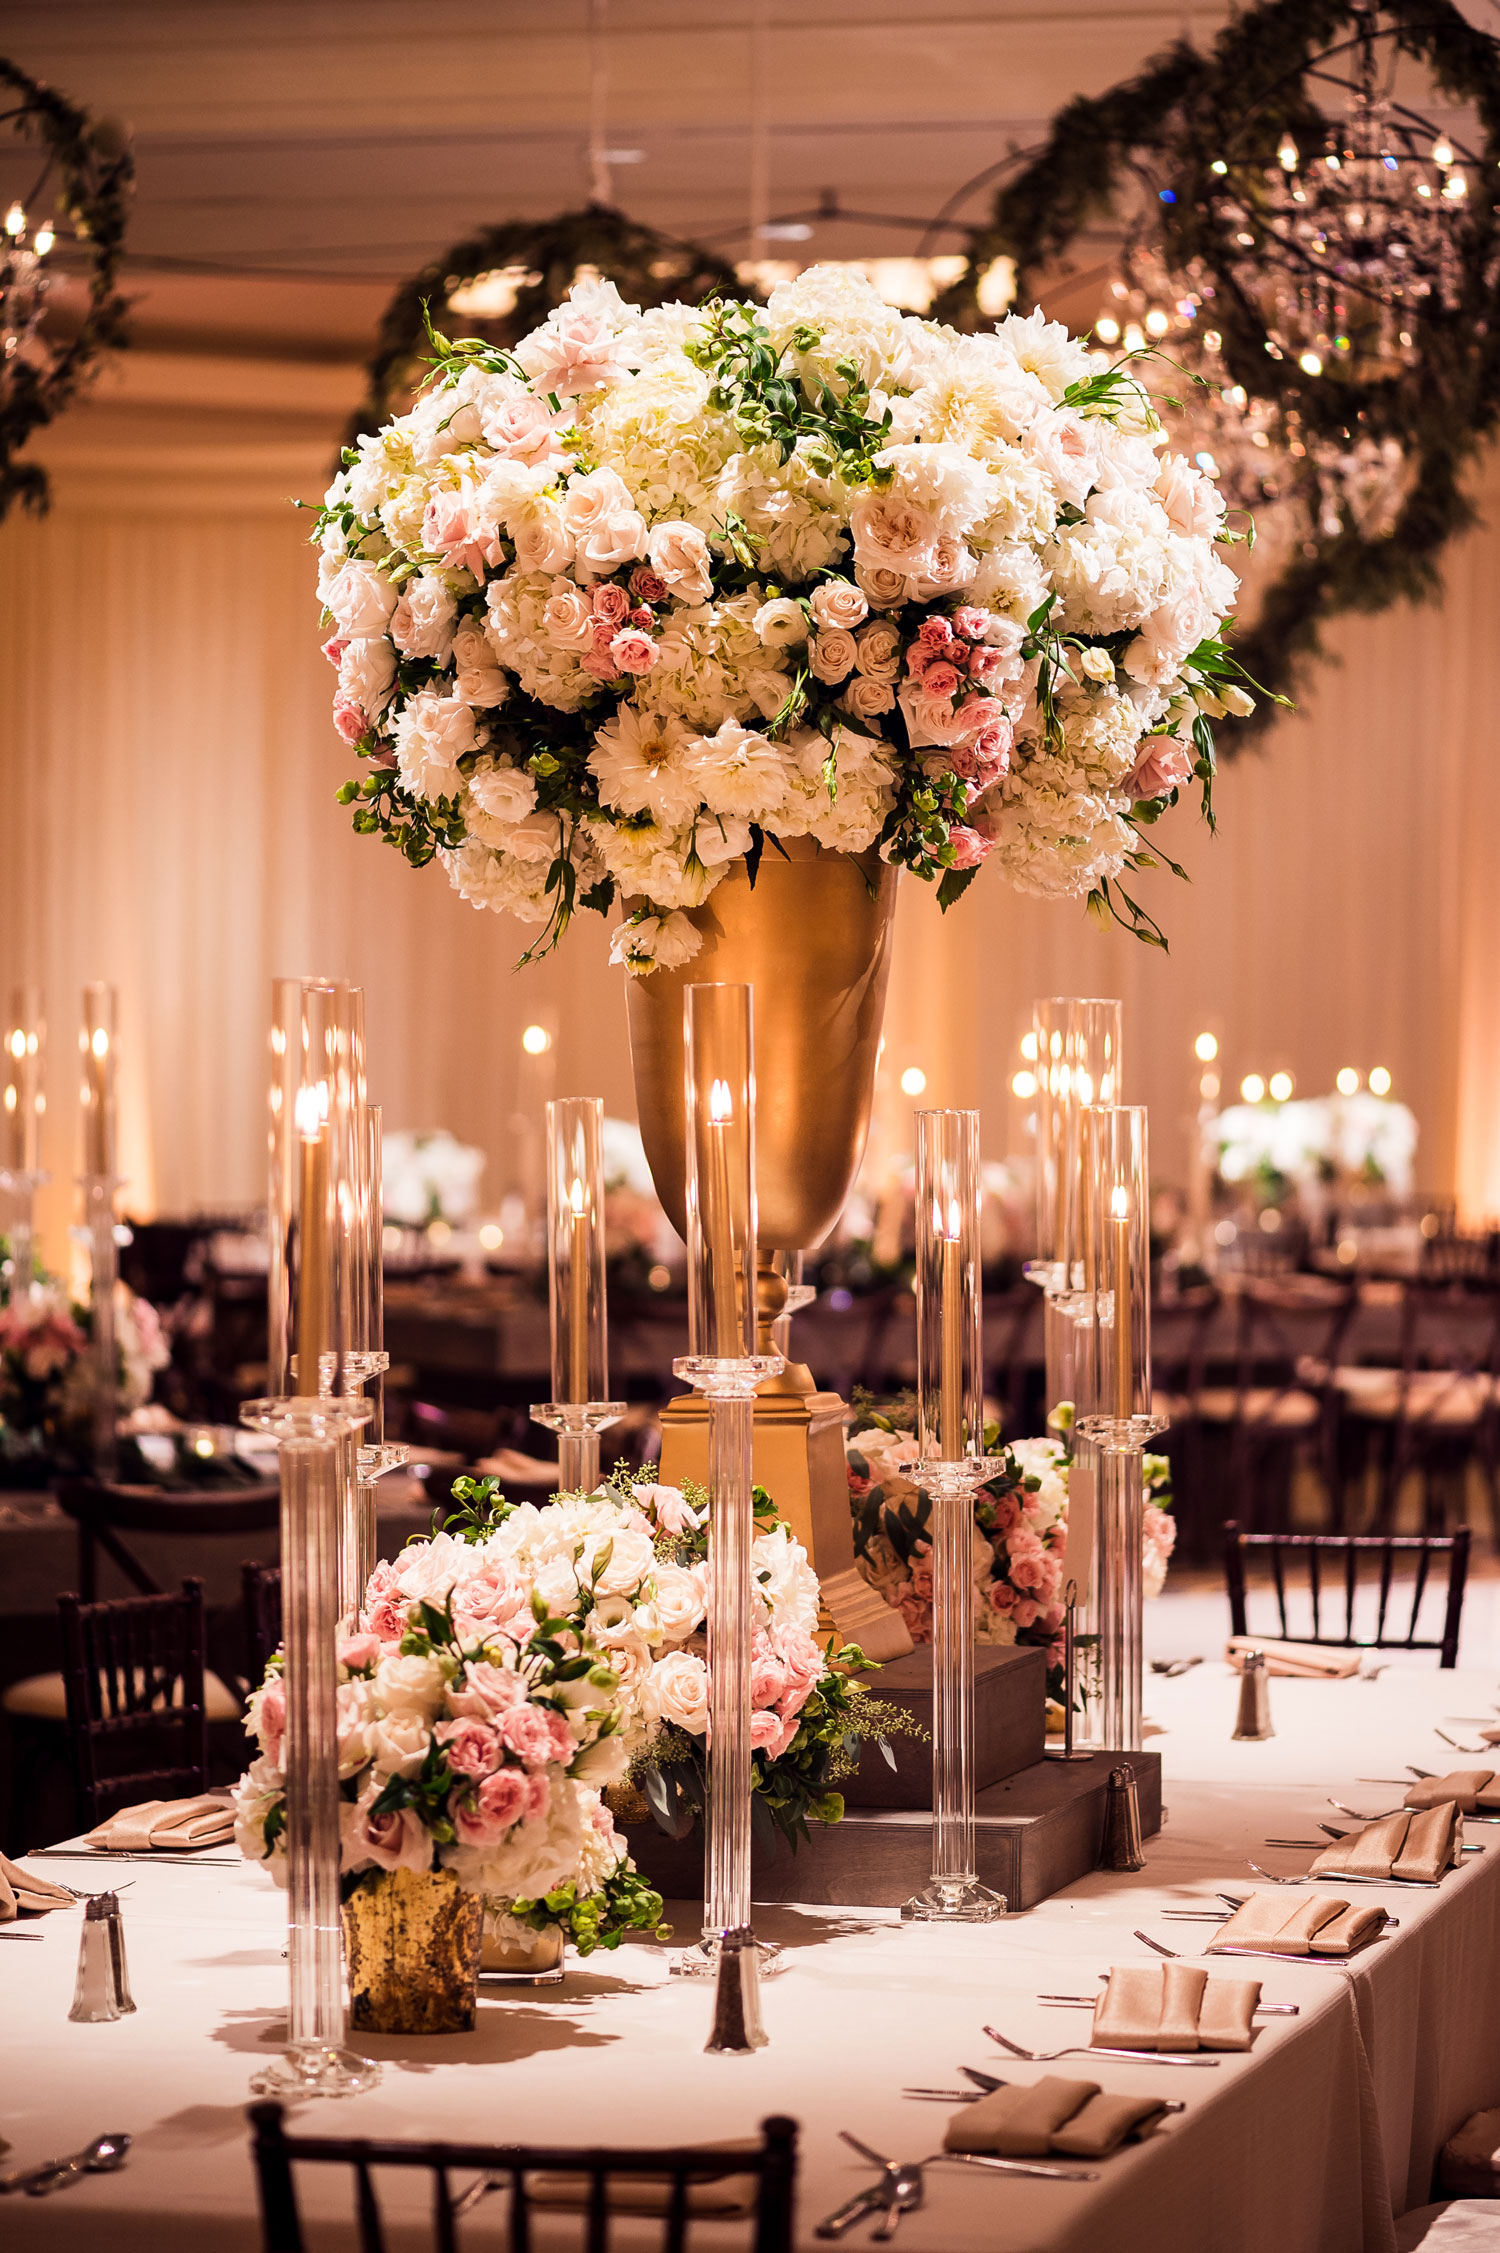 tall centerpiece wedding ideas gold urn with pink flowers greenery candles